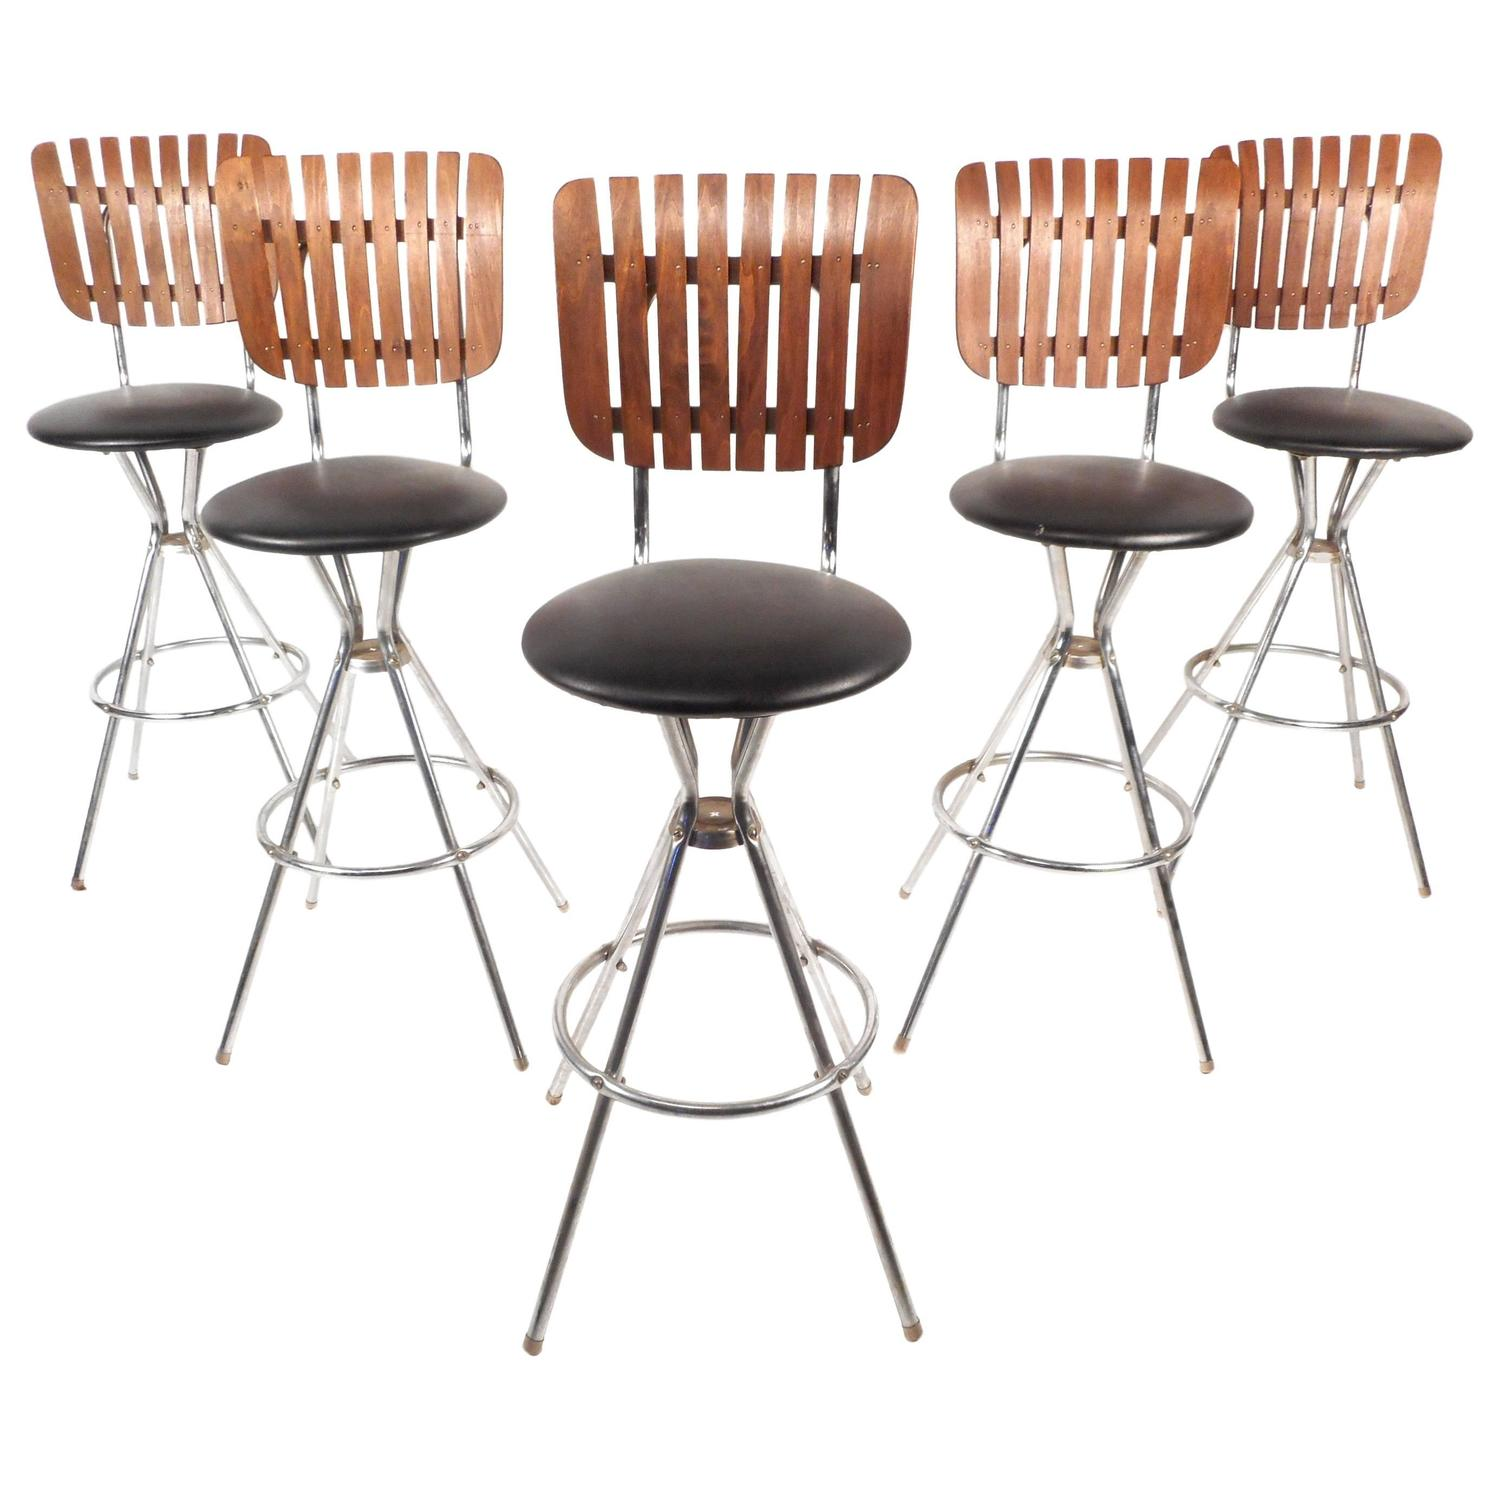 Set of five mid century modern swivel bar stools for sale at 1stdibs